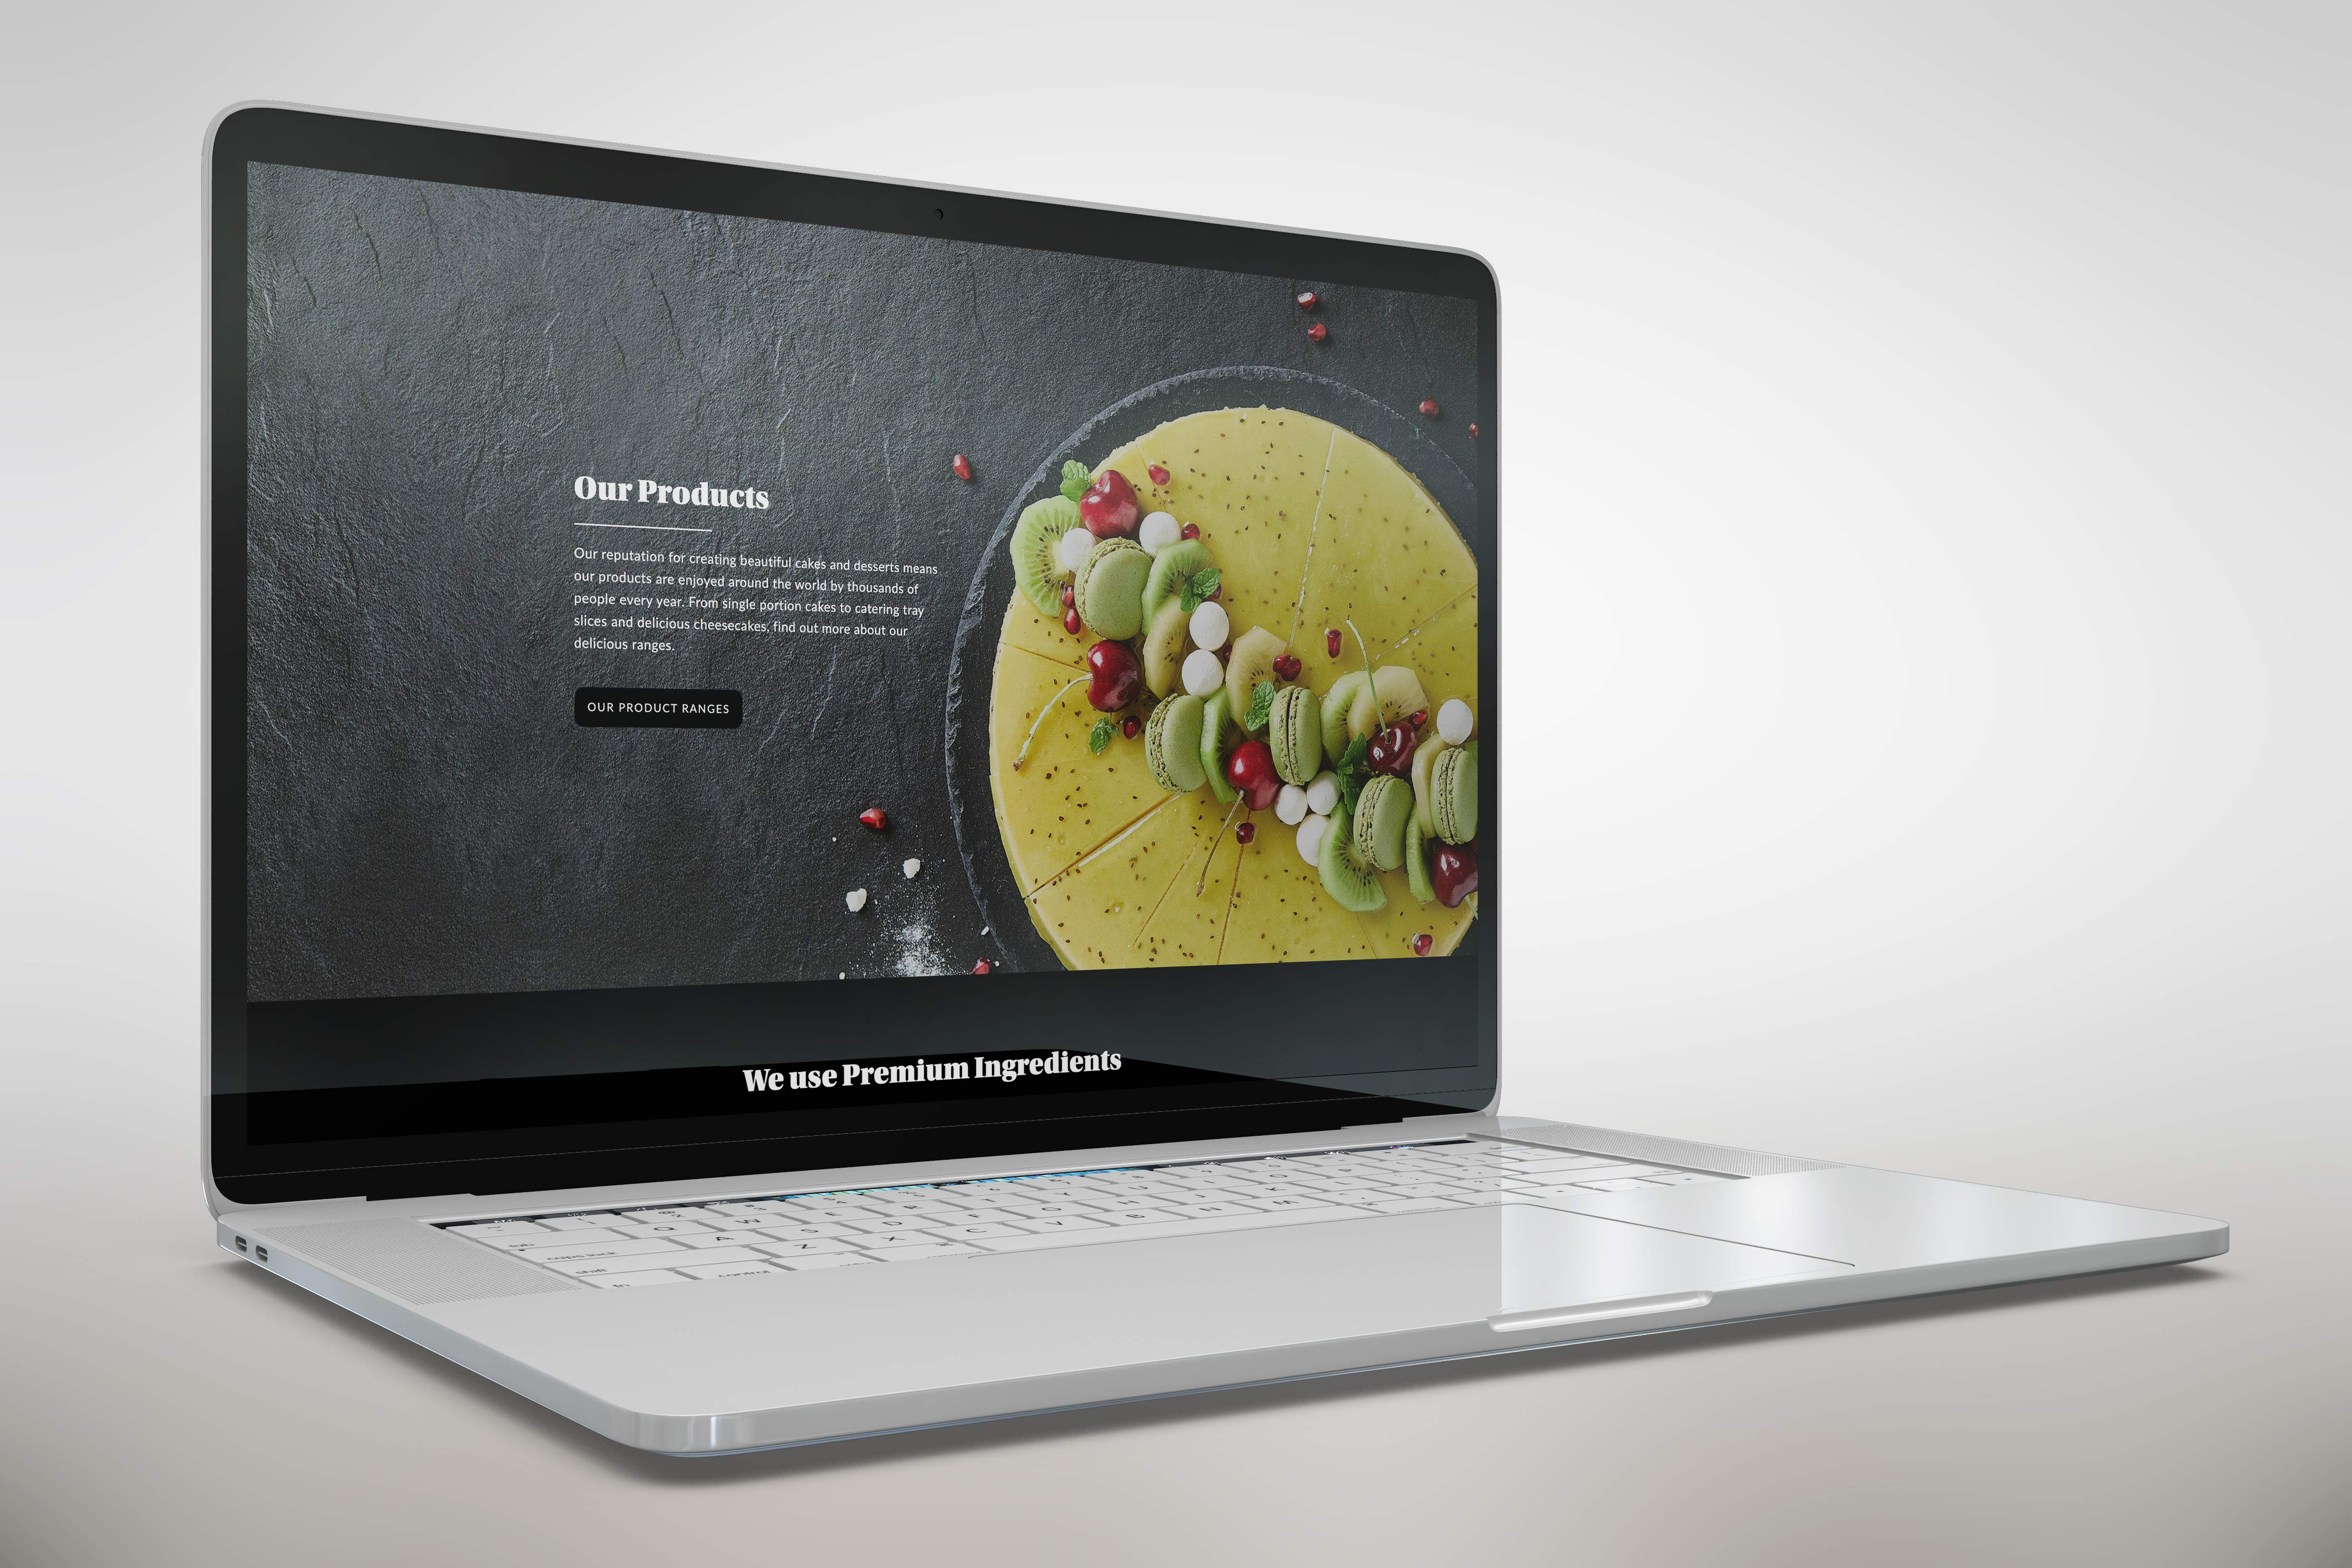 A laptop showing a link to the Mountbry product page.